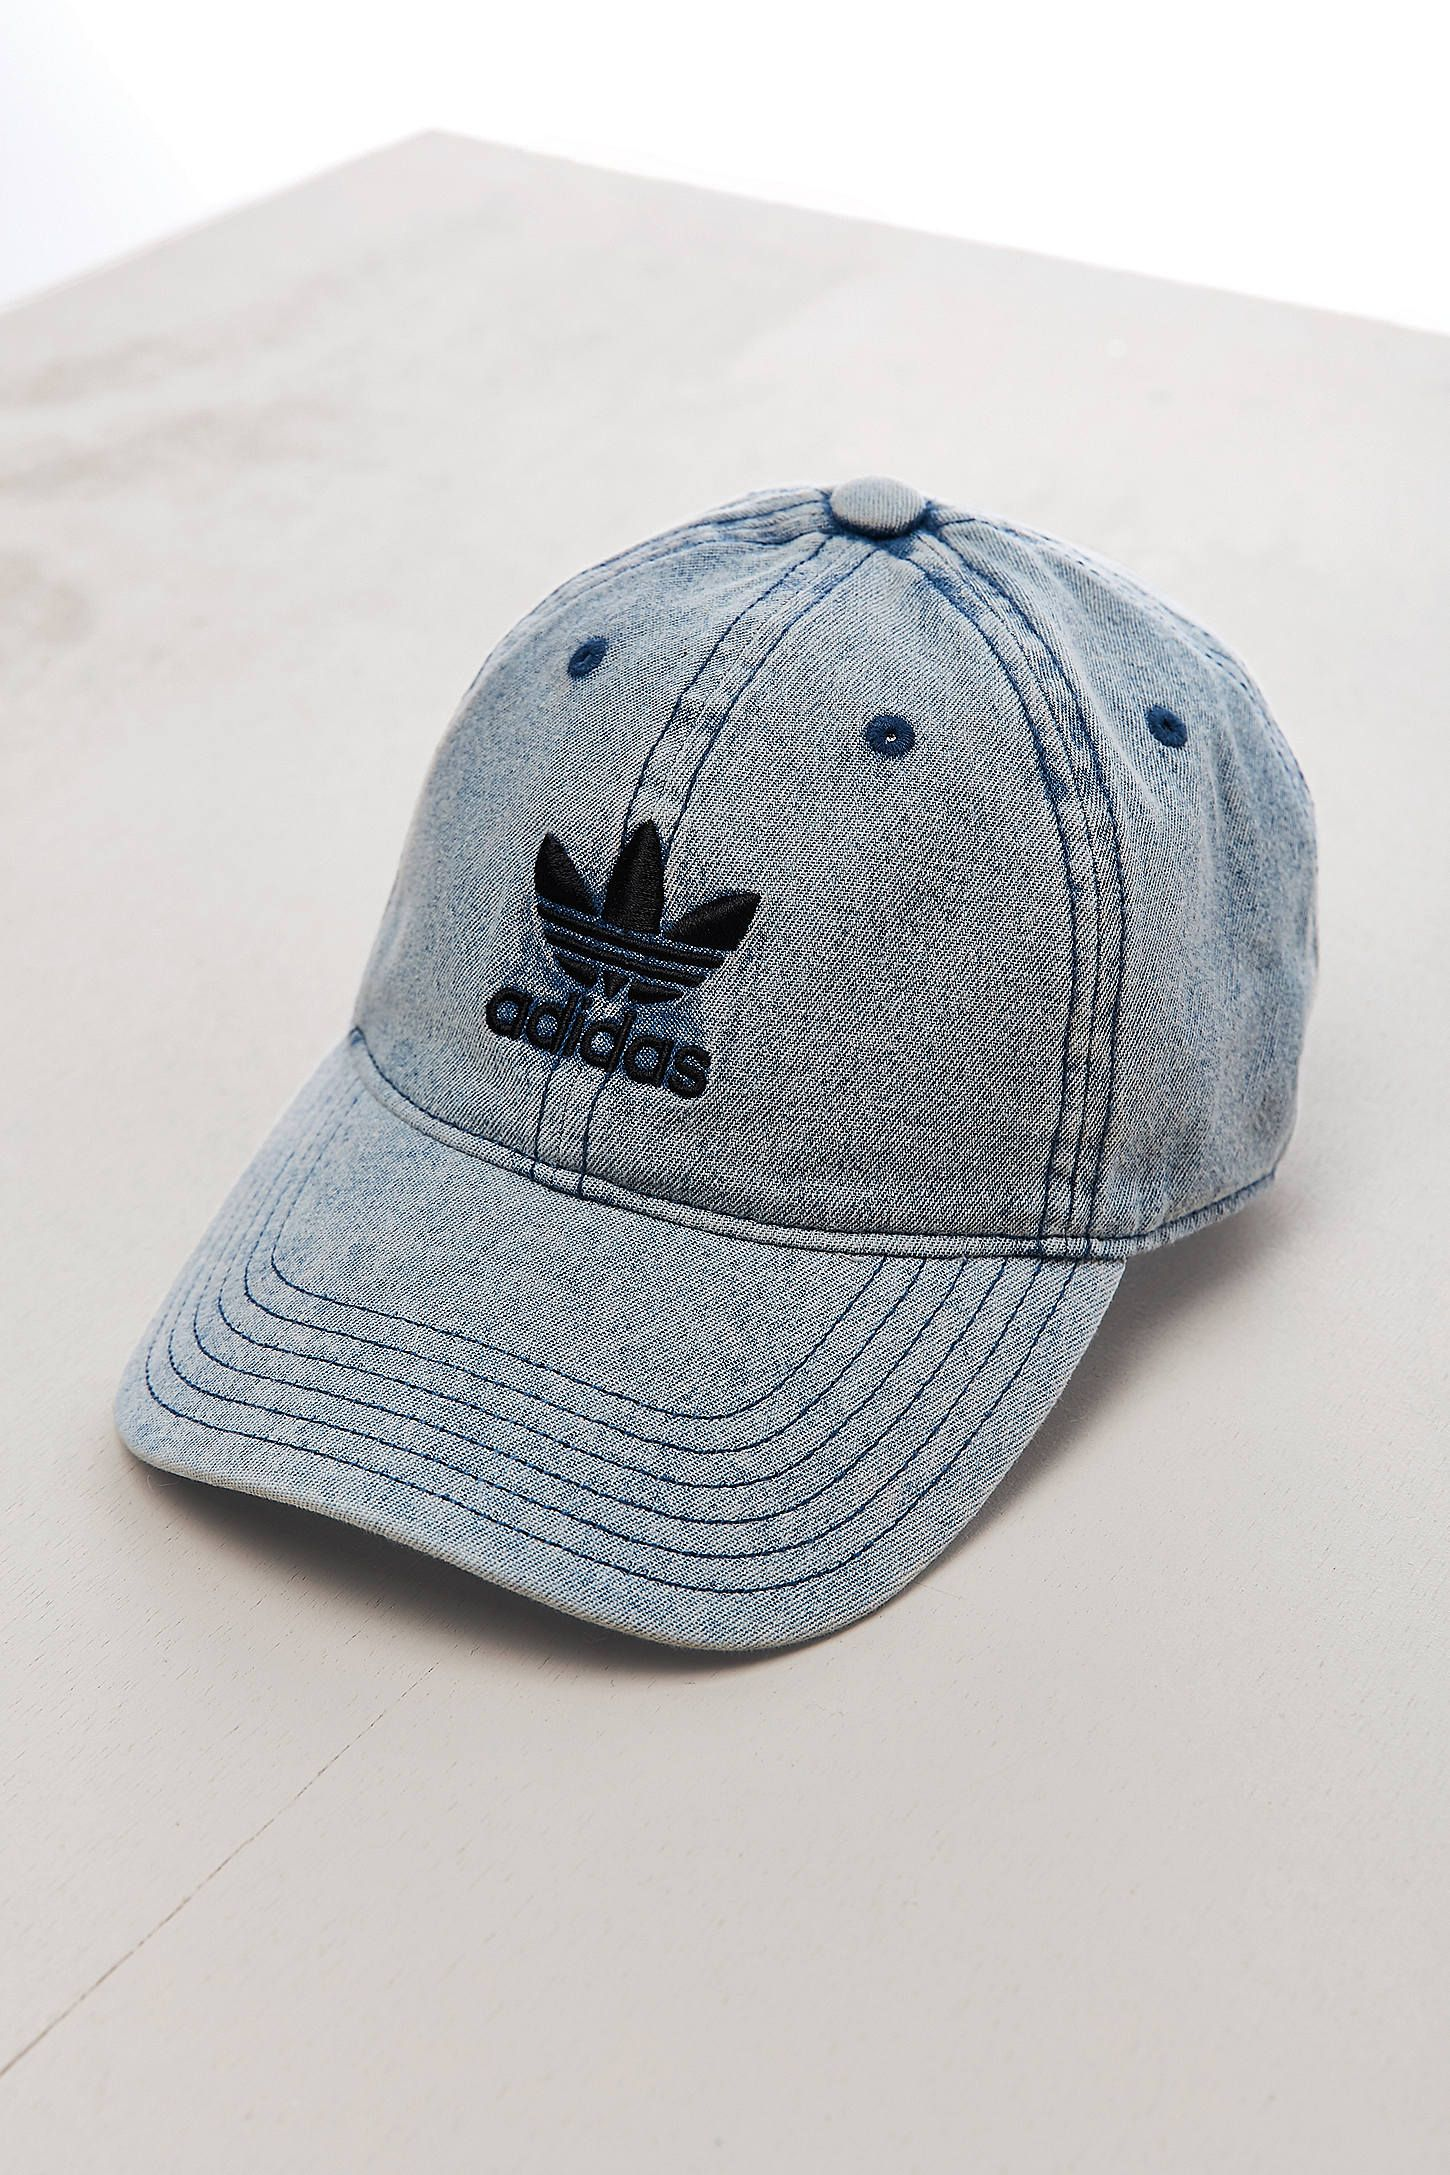 UO adidas Relaxed Denim Baseball Hat  8ec5c8506c5